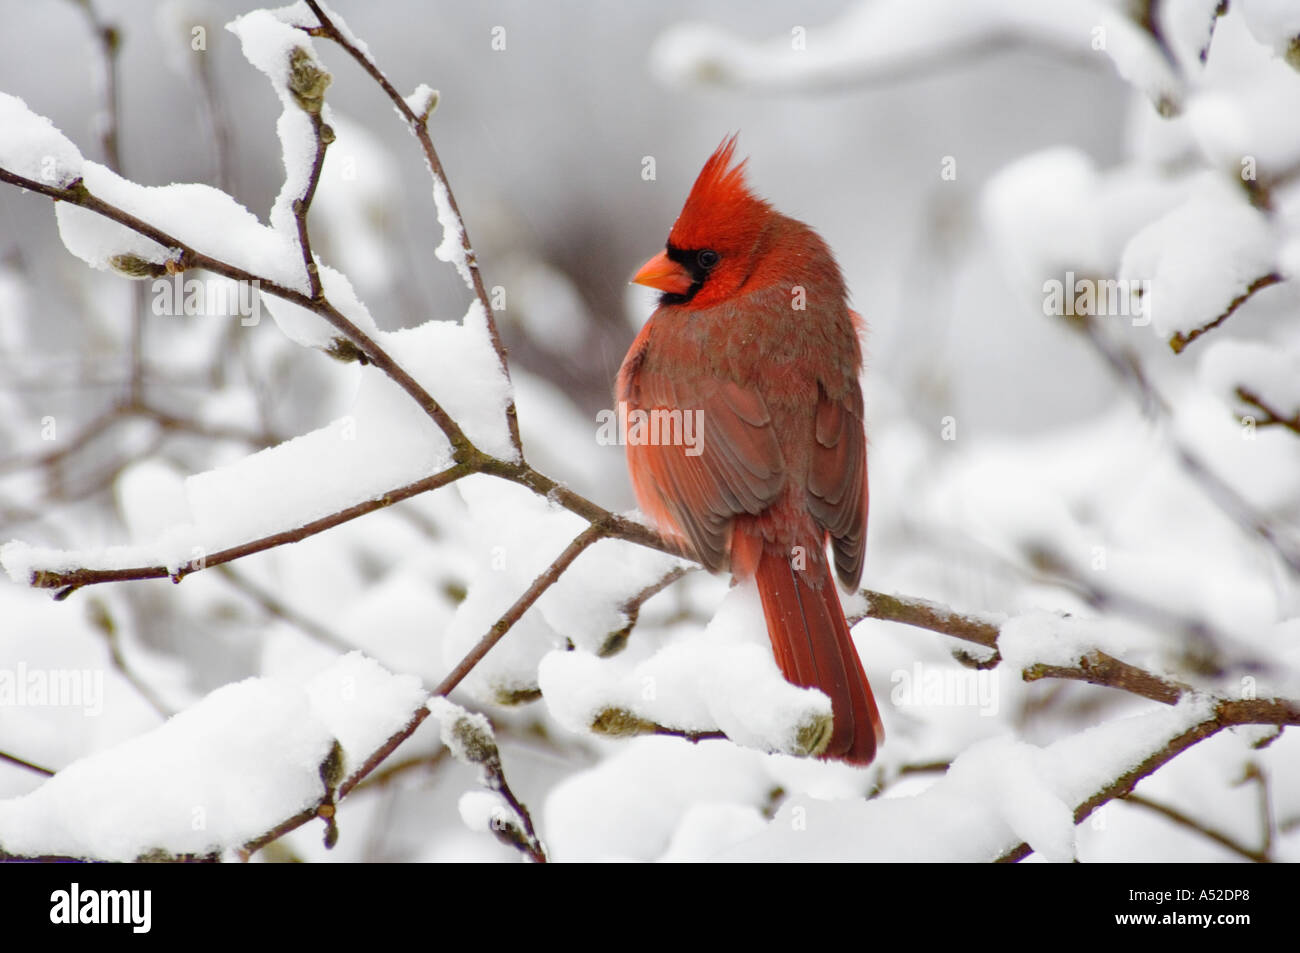 Male Cardinal Cardinalis cardinalis Perched On Snow Covered Branch Of Star Magnolia Tree Floyd County Indiana - Stock Image